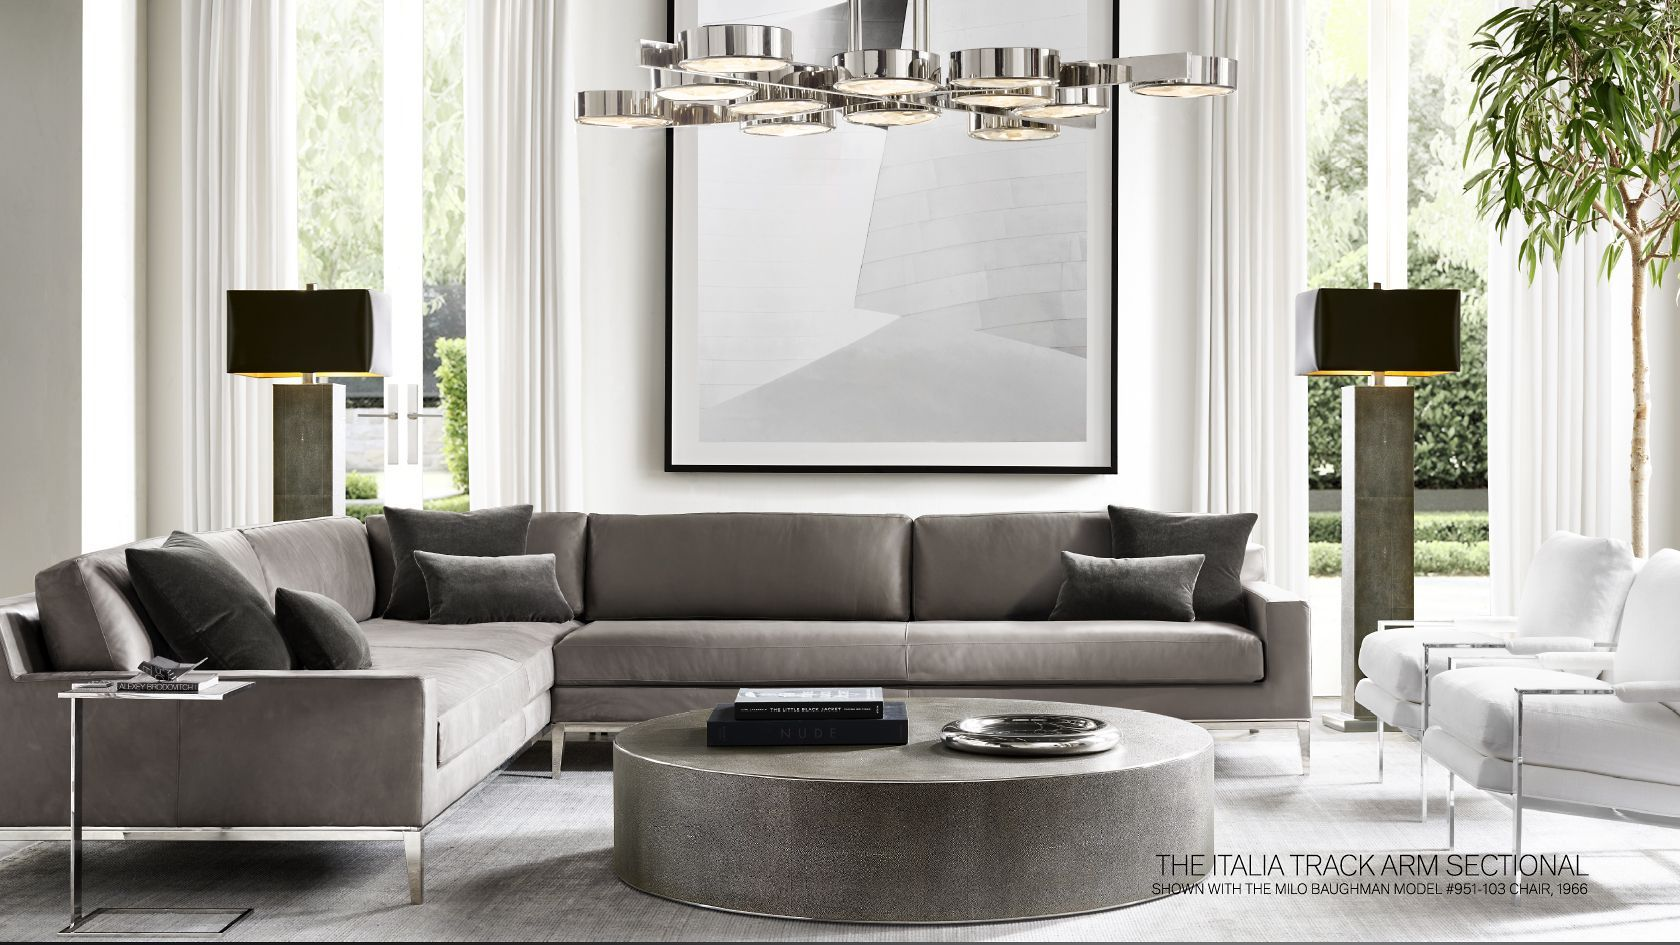 Rh Modern Where Less Is More And Minimal Is Magnified Luxury Living Room Design Luxury Living Room Restoration Hardware Living Room [ 945 x 1680 Pixel ]